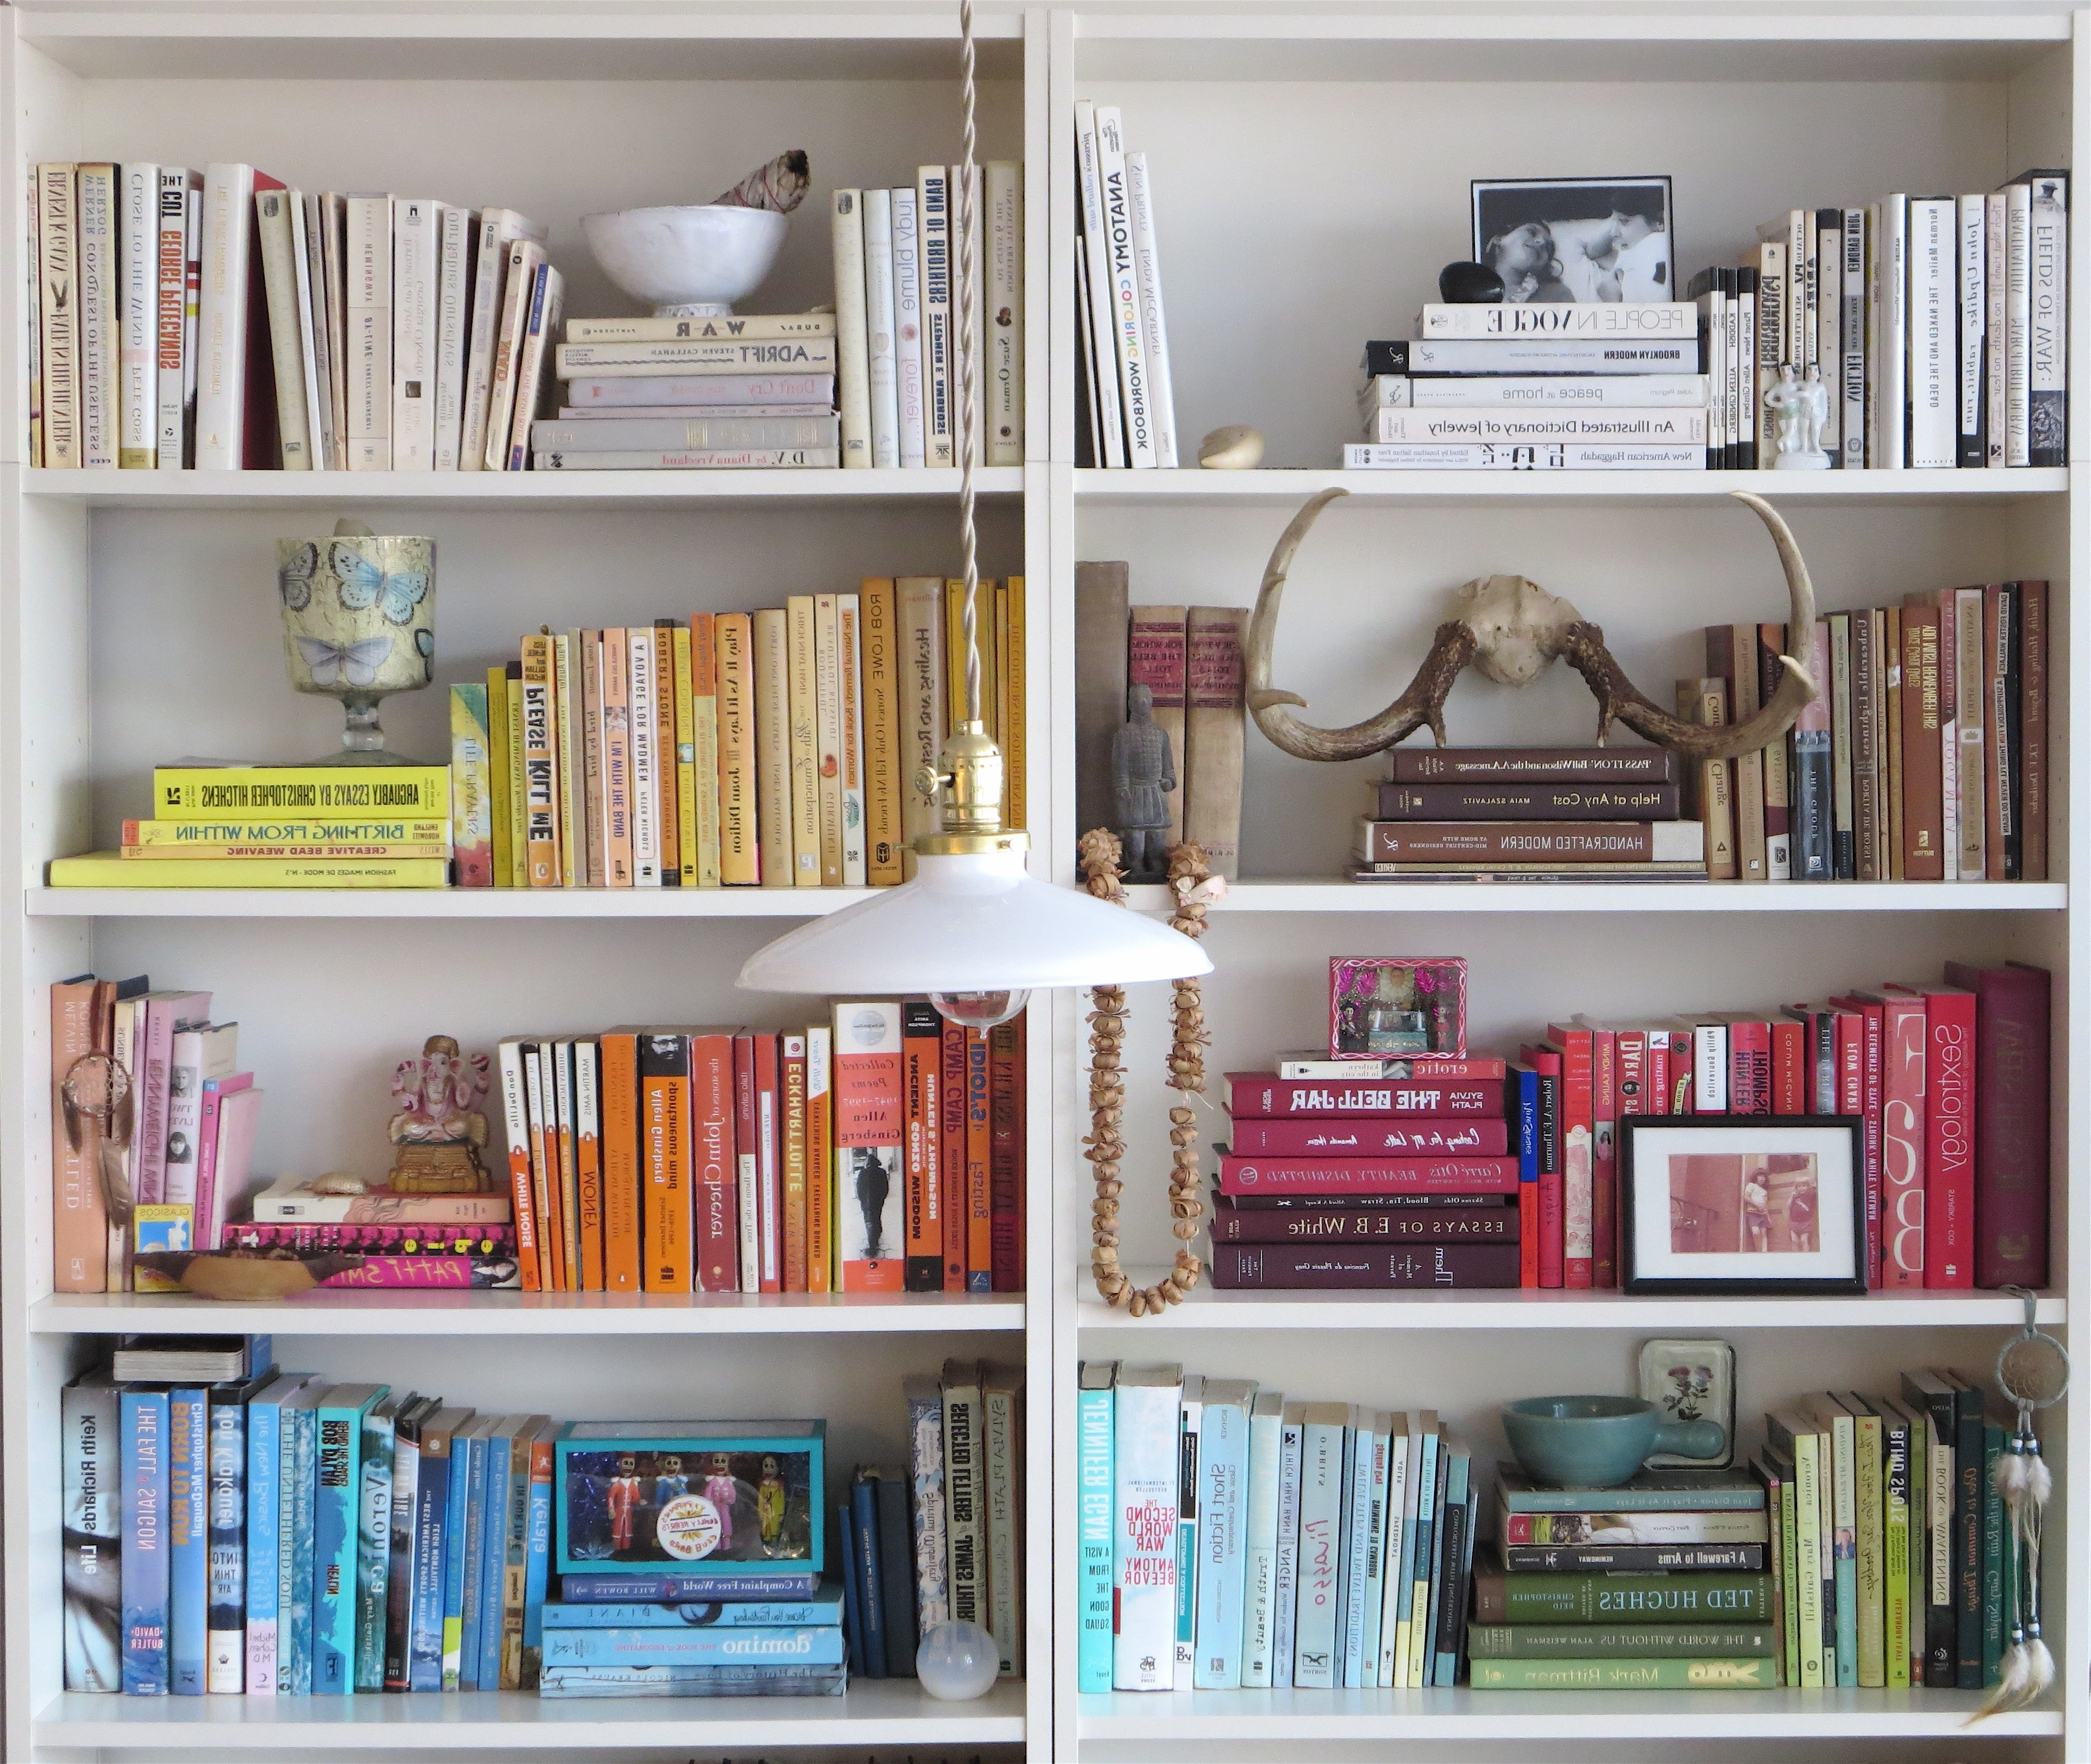 Colored Bookcases In 2017 Ideas Of Ameriwood 3 Shelf And 5 Shelf Bookcases Mix And Match (View 2 of 15)